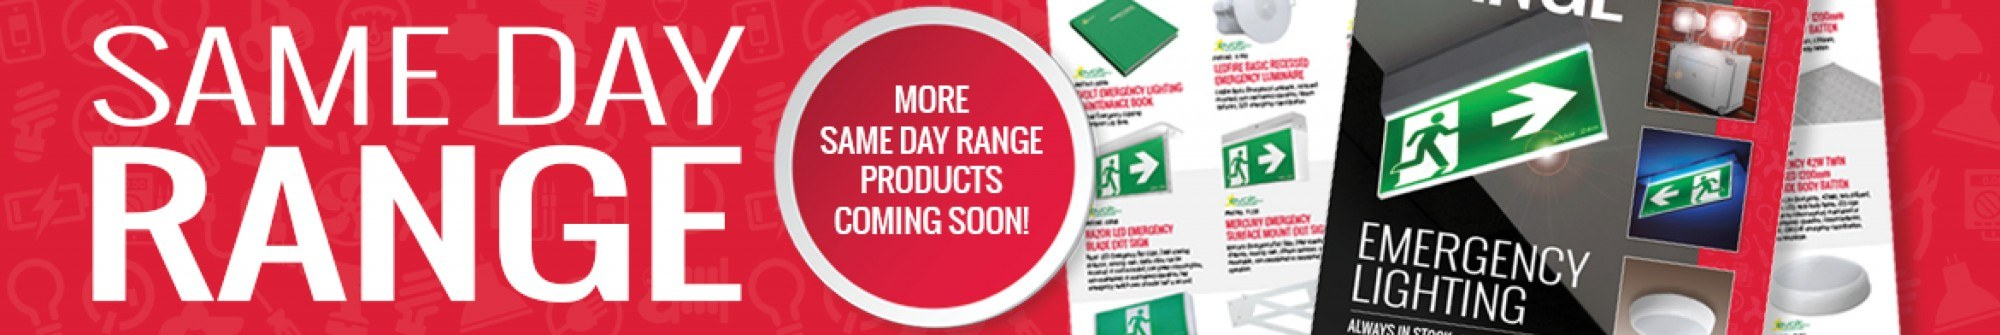 Same Day Range Products